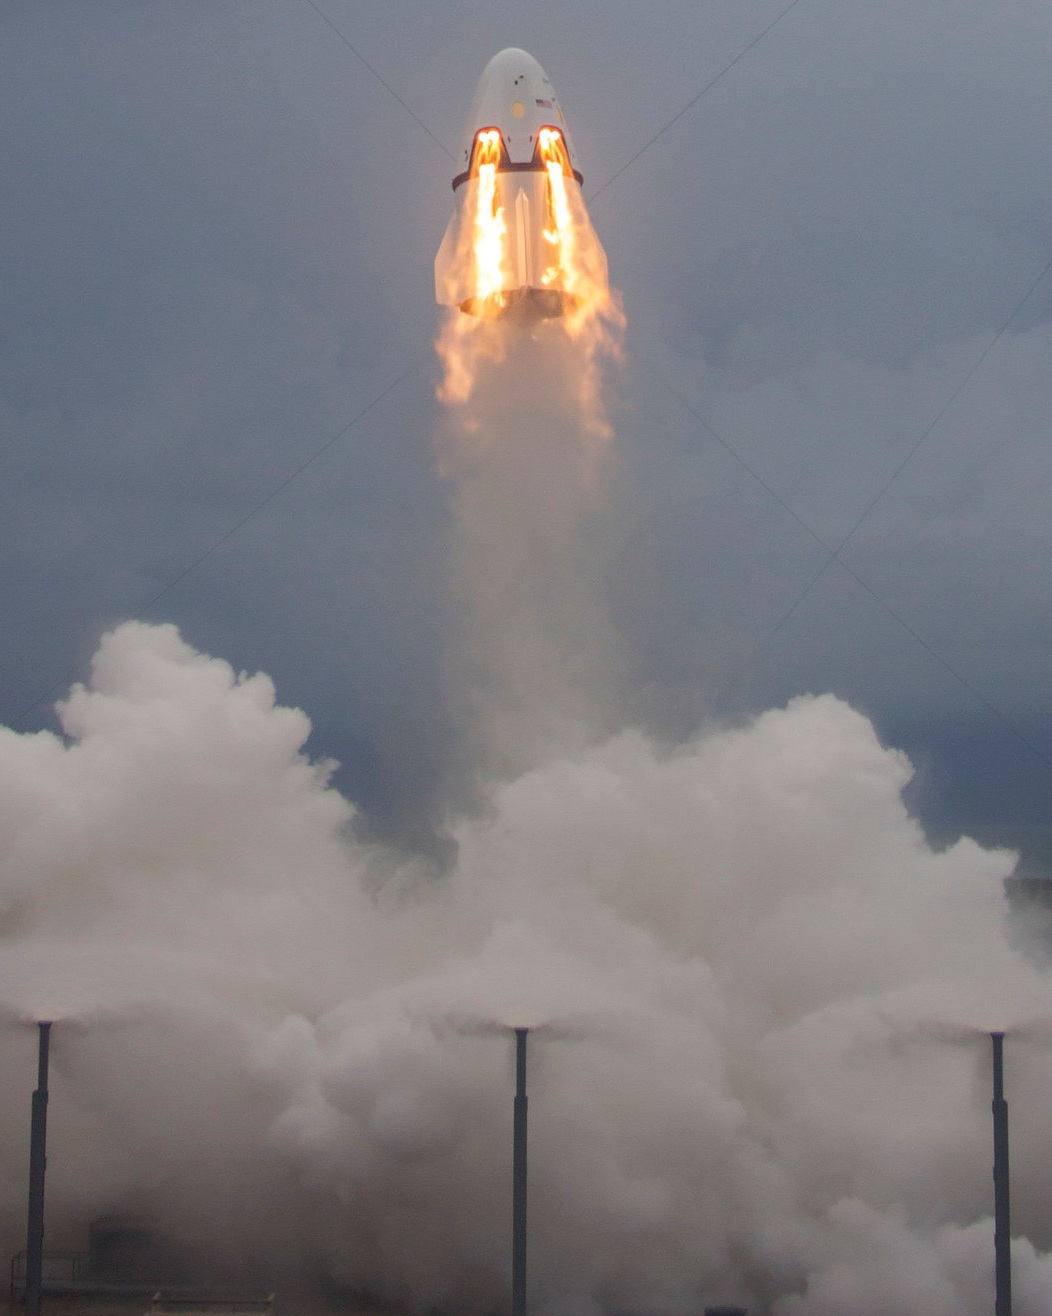 Crew Dragon pad abort test, 2015. Image credit: SpaceX